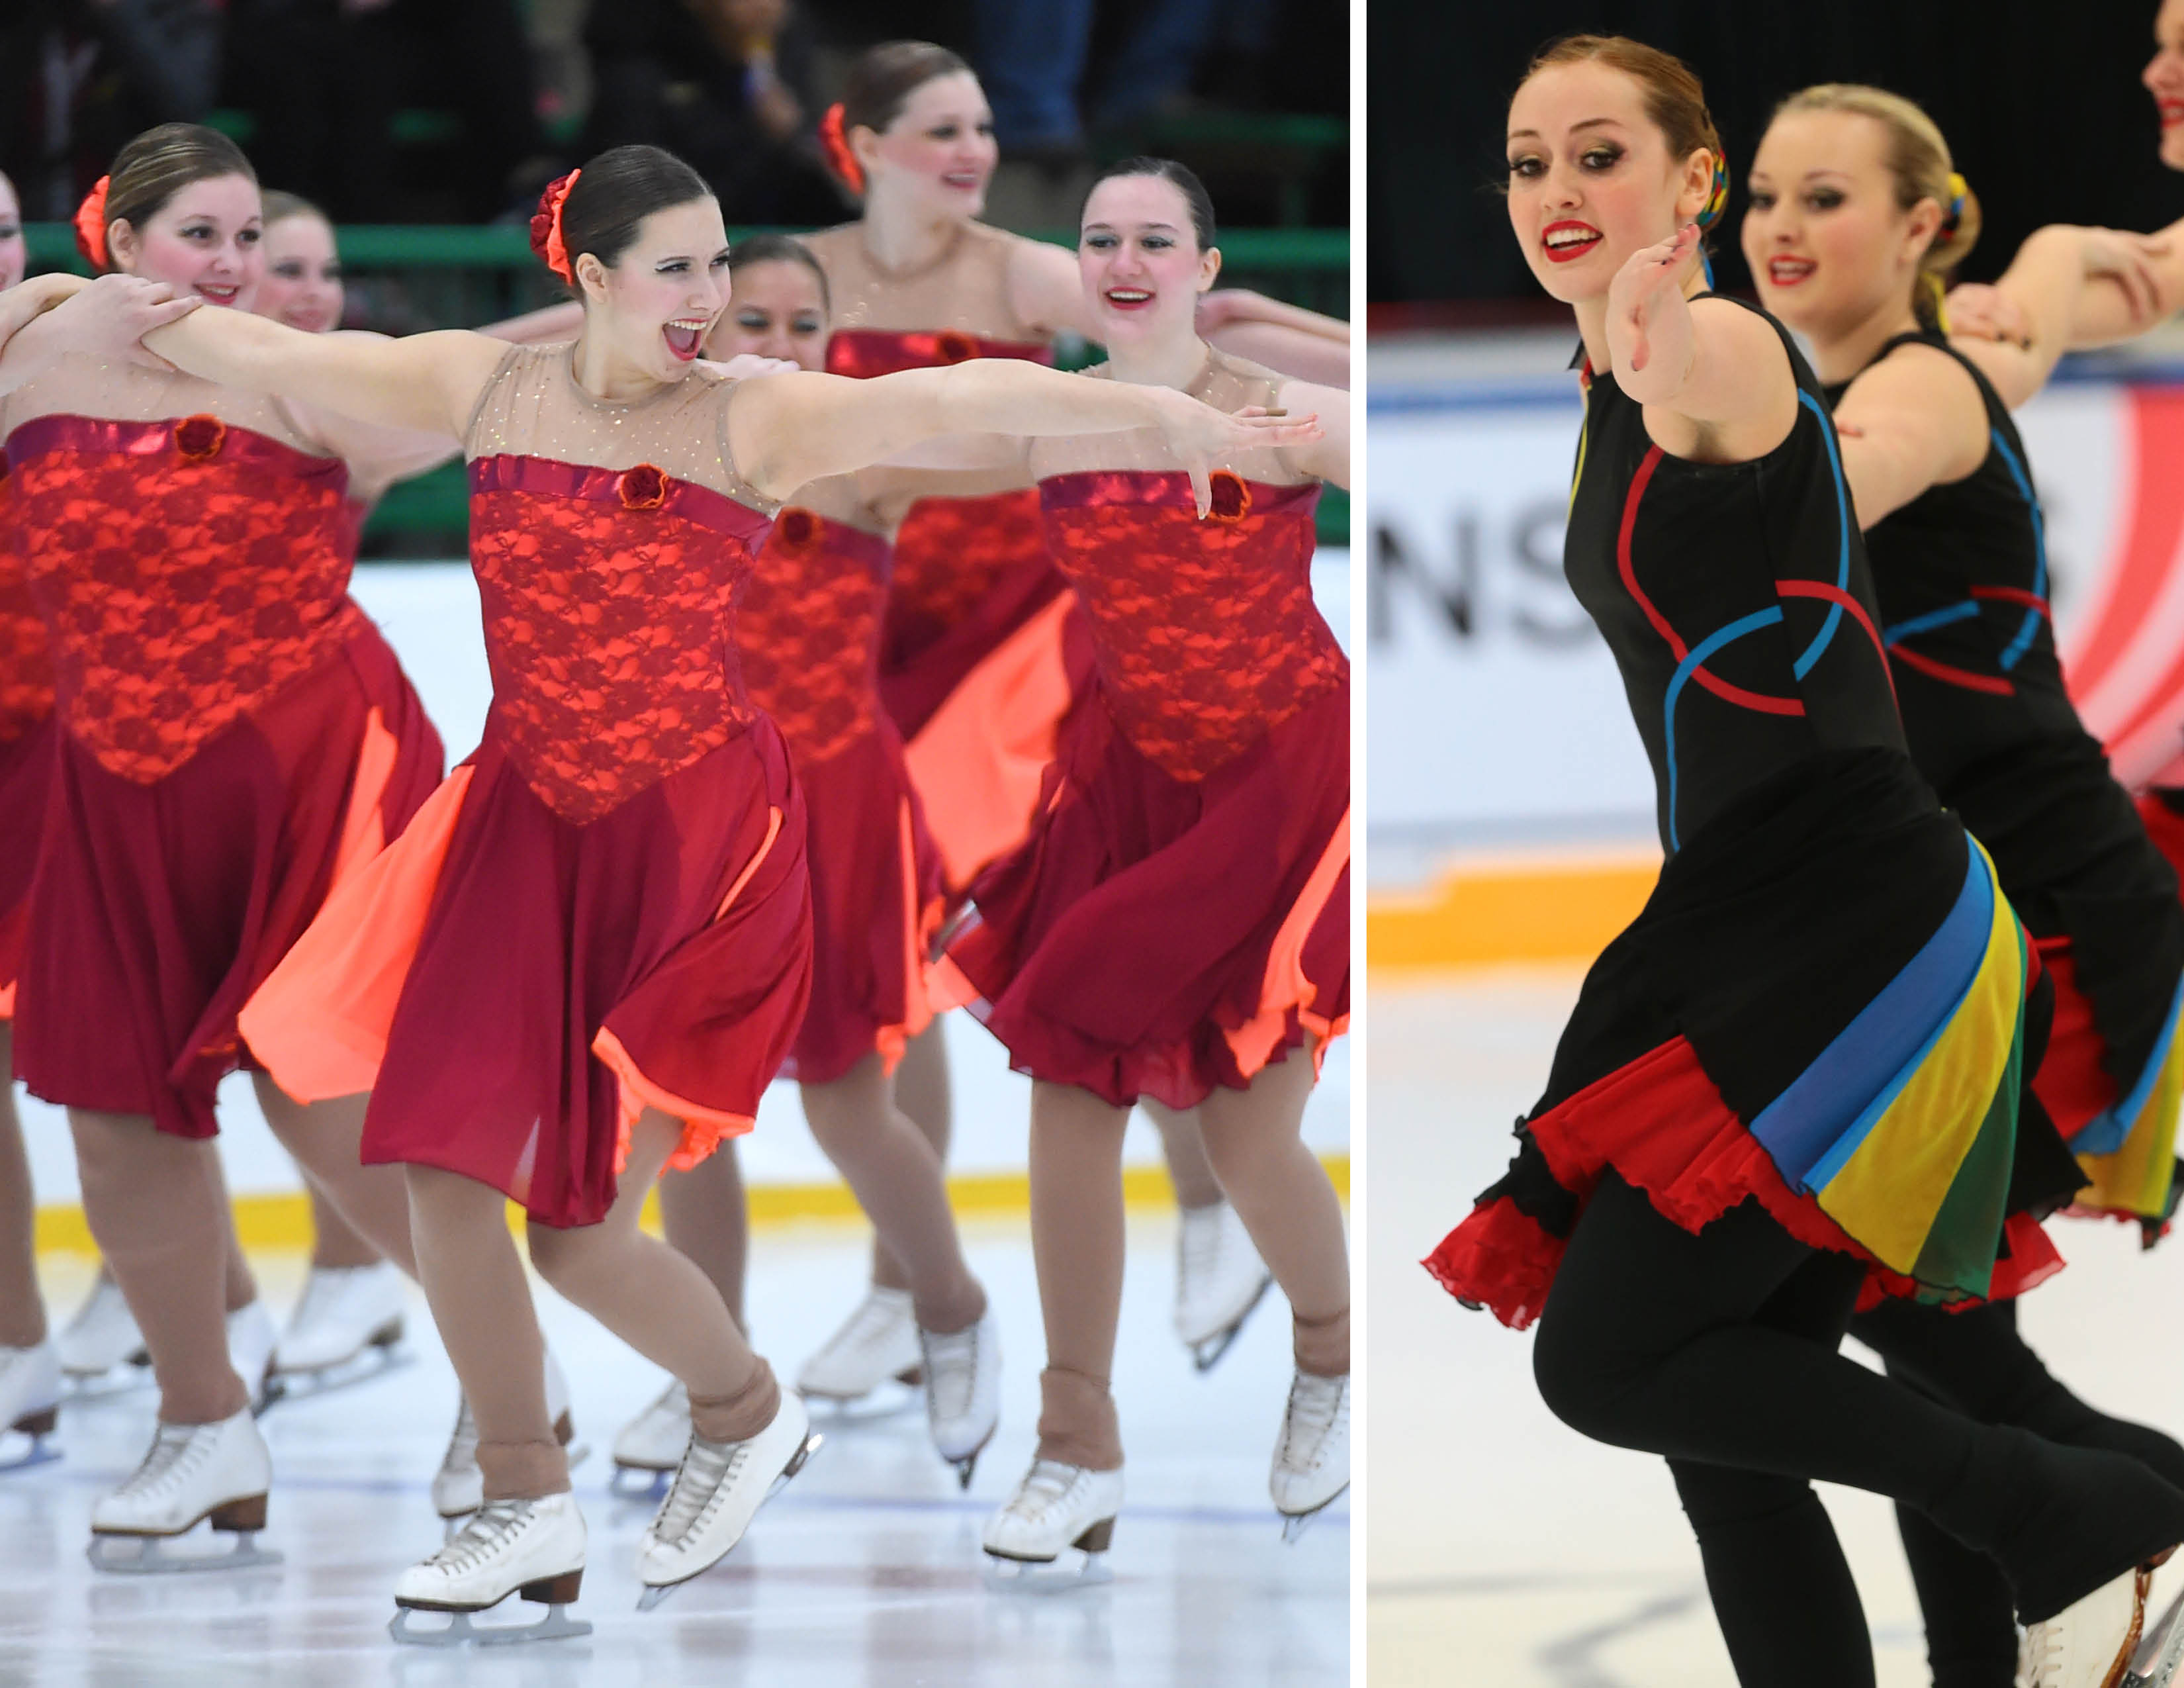 Syncrhonized skate dresses with color in skirt